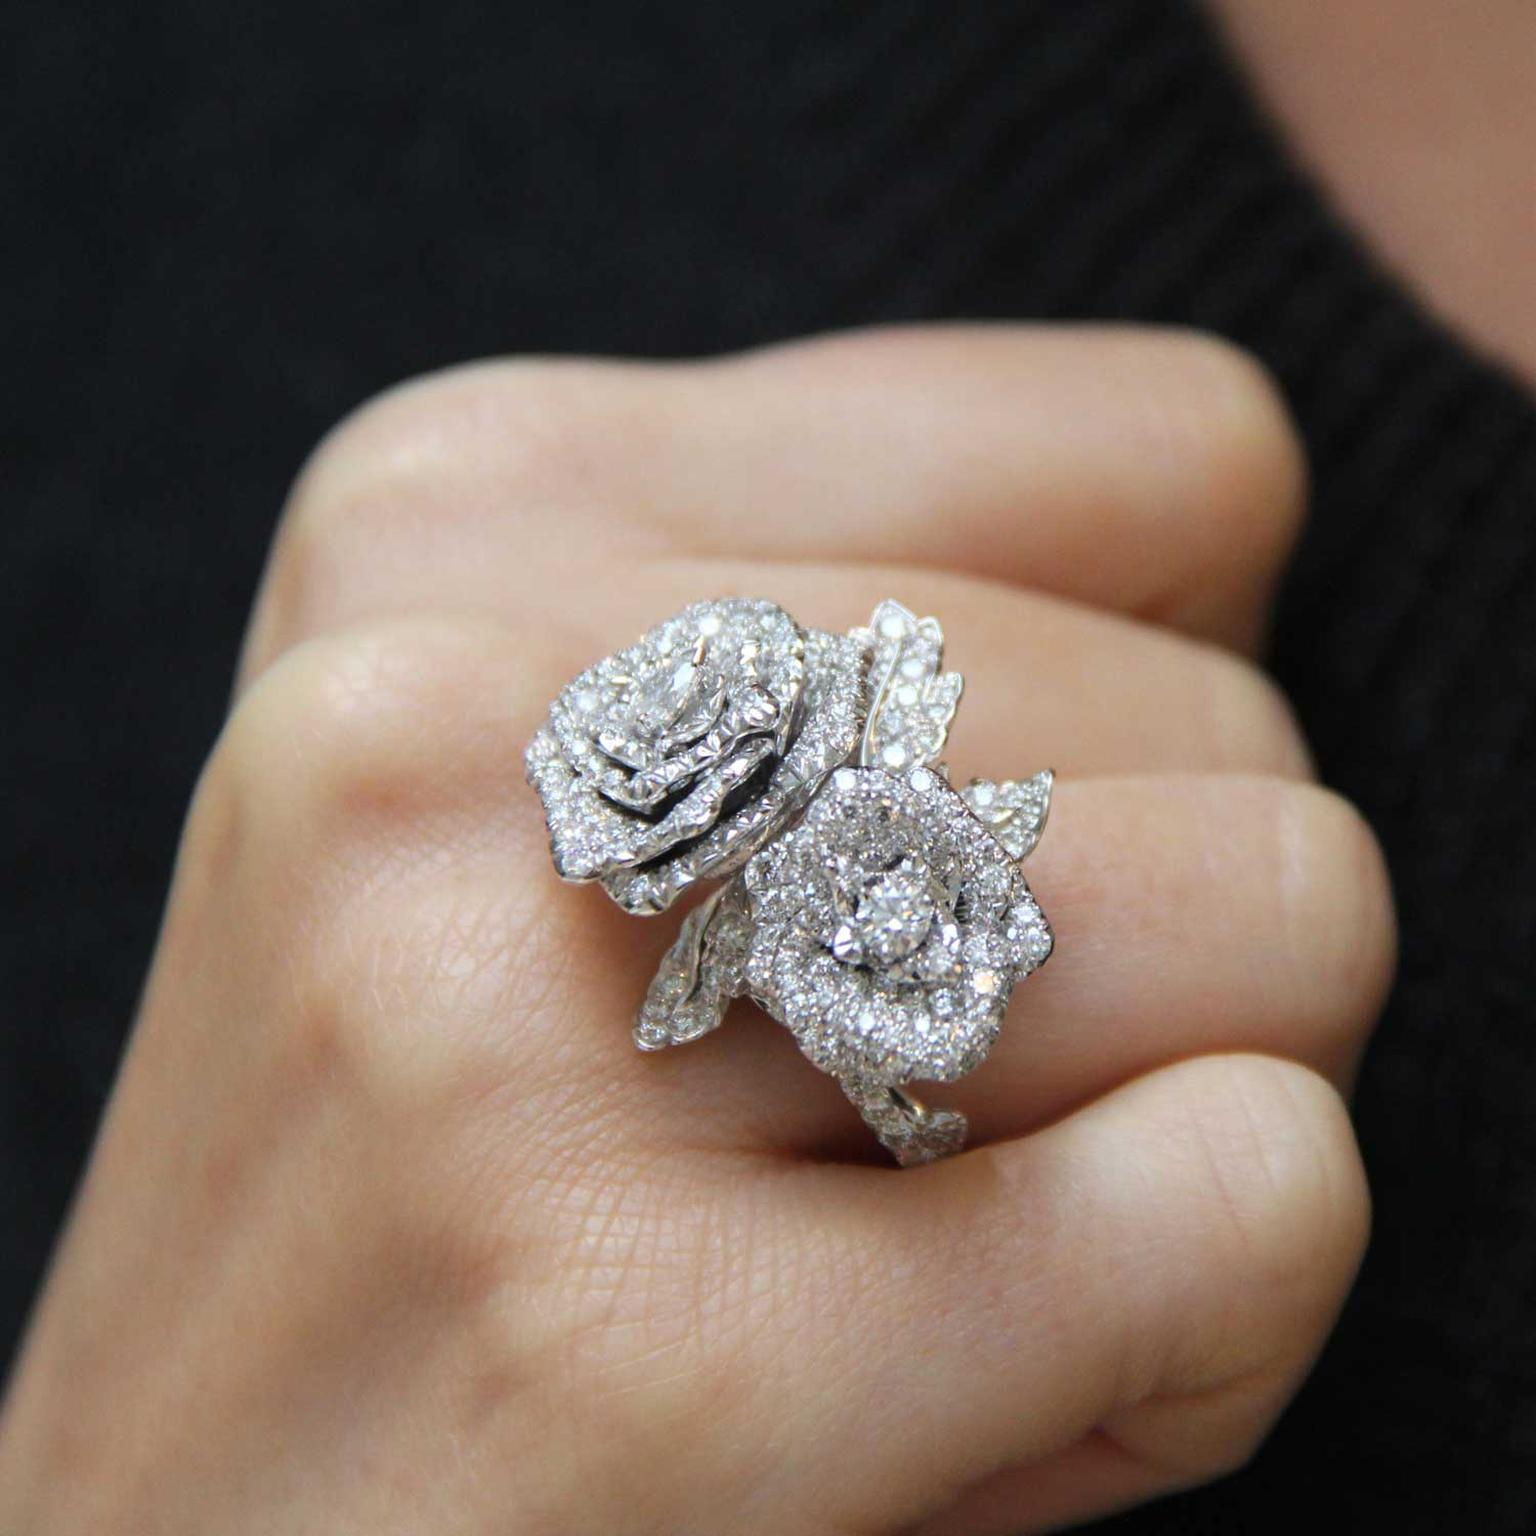 Rose Dior Bagatelle diamond ring